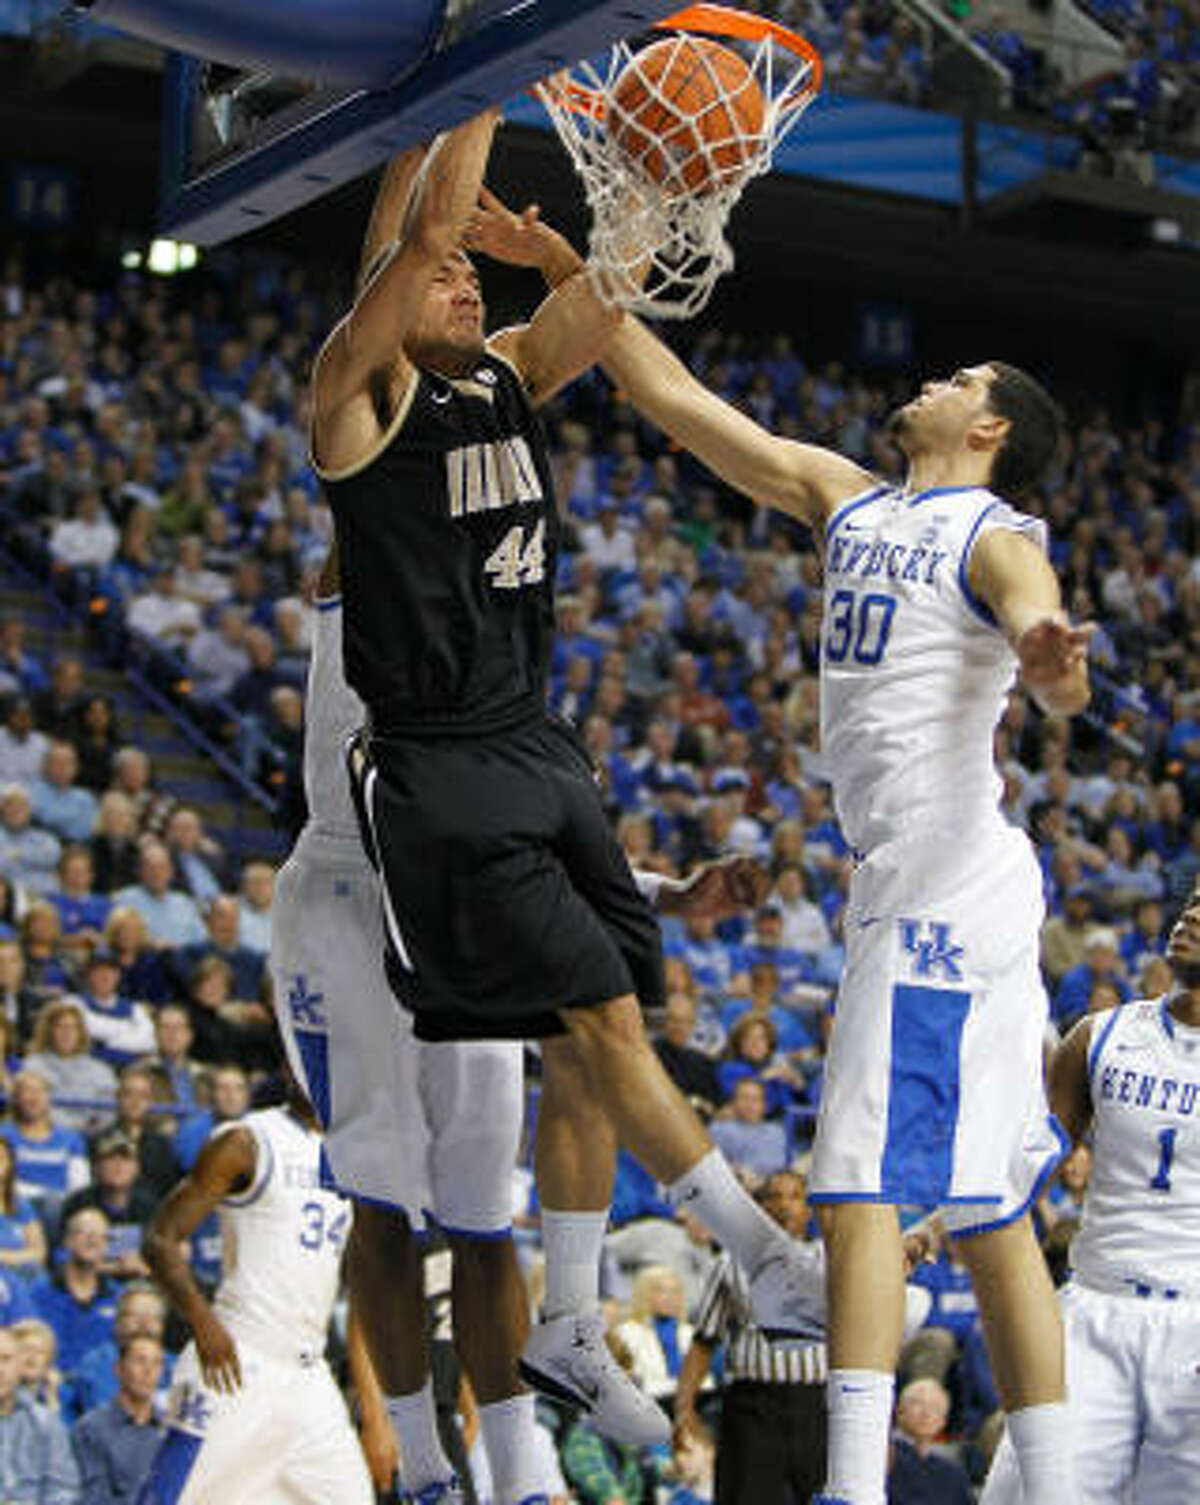 5 Vandy Commodores (23-10) . Finish and bid: 10-8, fourth place in SEC; at-large bid. . Coach: Kevin Stallings (12th season). . Best player: G John Jenkins, 6-4, So., 19.1 ppg, 3.0 rpg, 39.8 3-pt pct. . Best wins: North Carolina, vs. Kentucky. . Road to Reliant: 672 miles. . Notable: Have won at least nine SEC games in four of past five years. In last two appearances, Vandy lost to 13 seeds (Siena, 2008; Murray State, 2010).